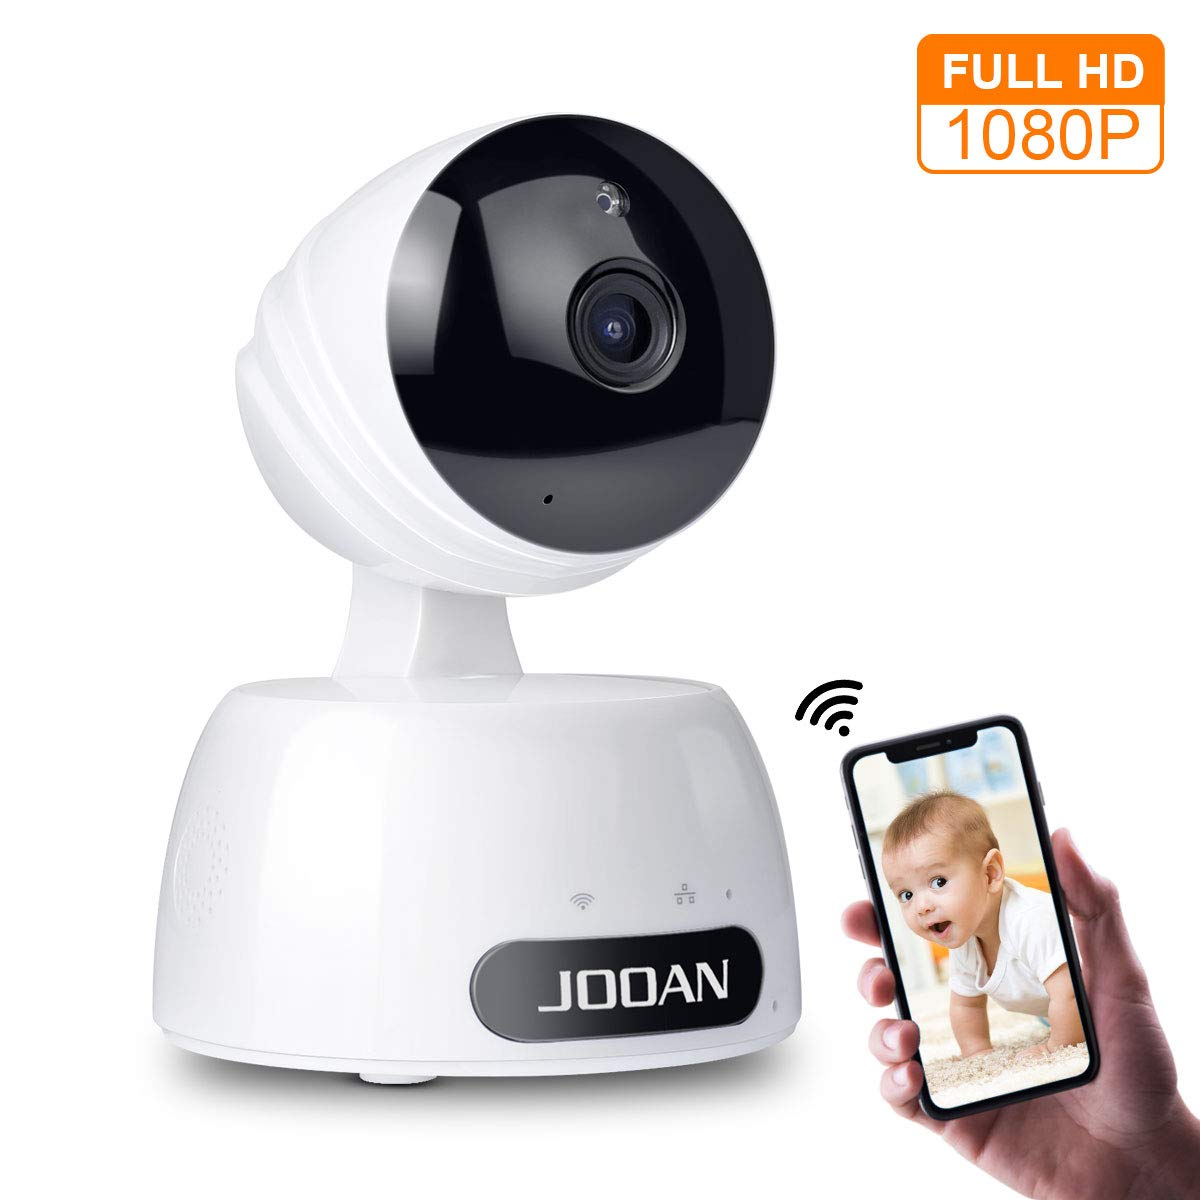 1080P Home Security Camera 2MP HD WiFi IP Camera Wireless Surveillance Camera System Great As A Baby/Pet Monitor with Two Way Audio Remote Access Night Vision and Motion Detection Alerts